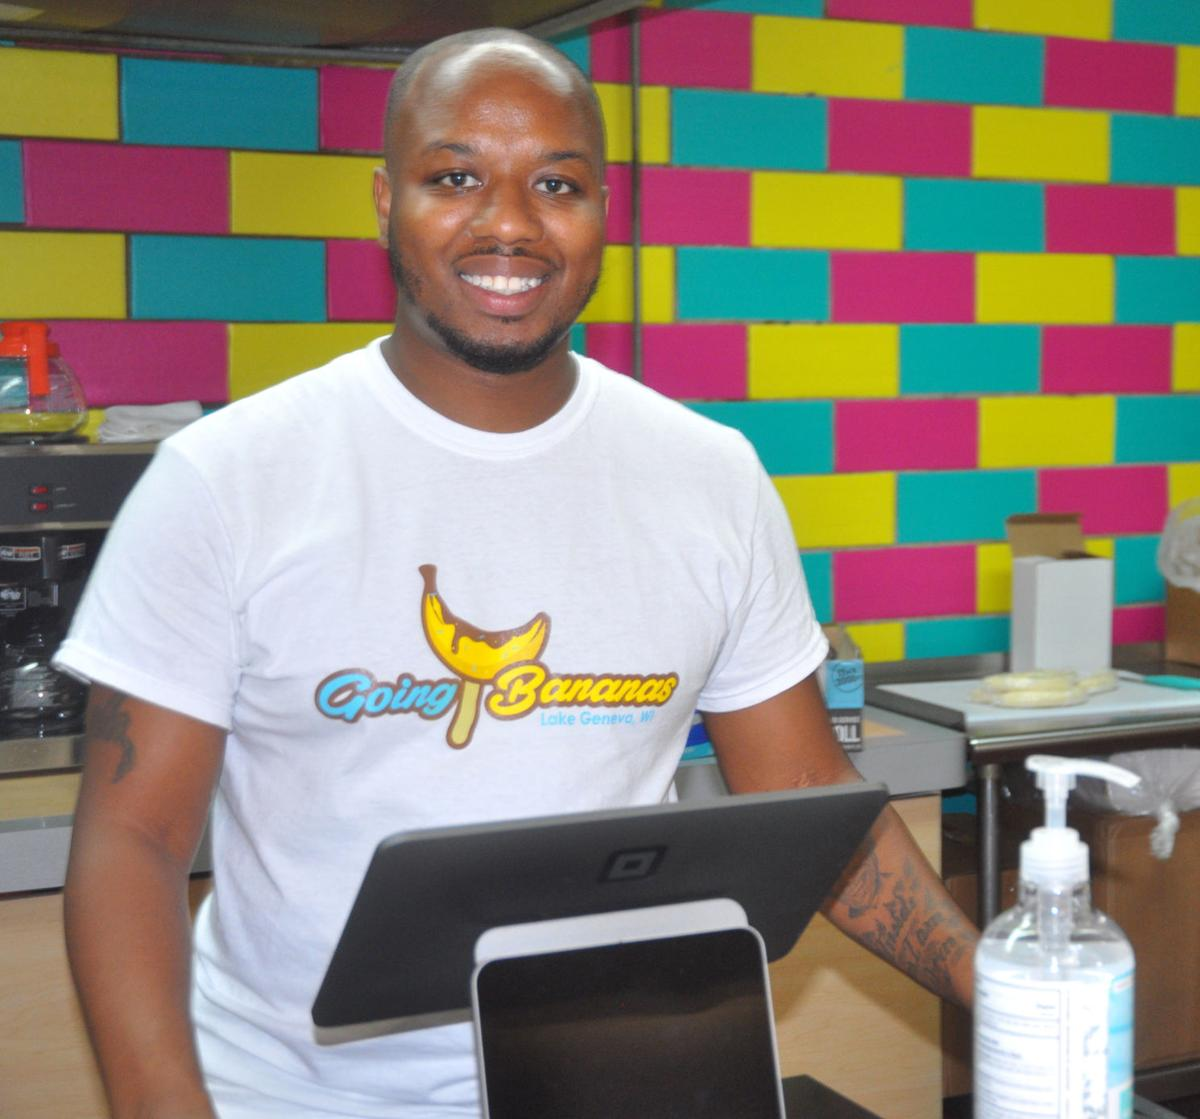 Joseph Hatten, co-owner of Going Bananas, stands at the counter of the recently-opened